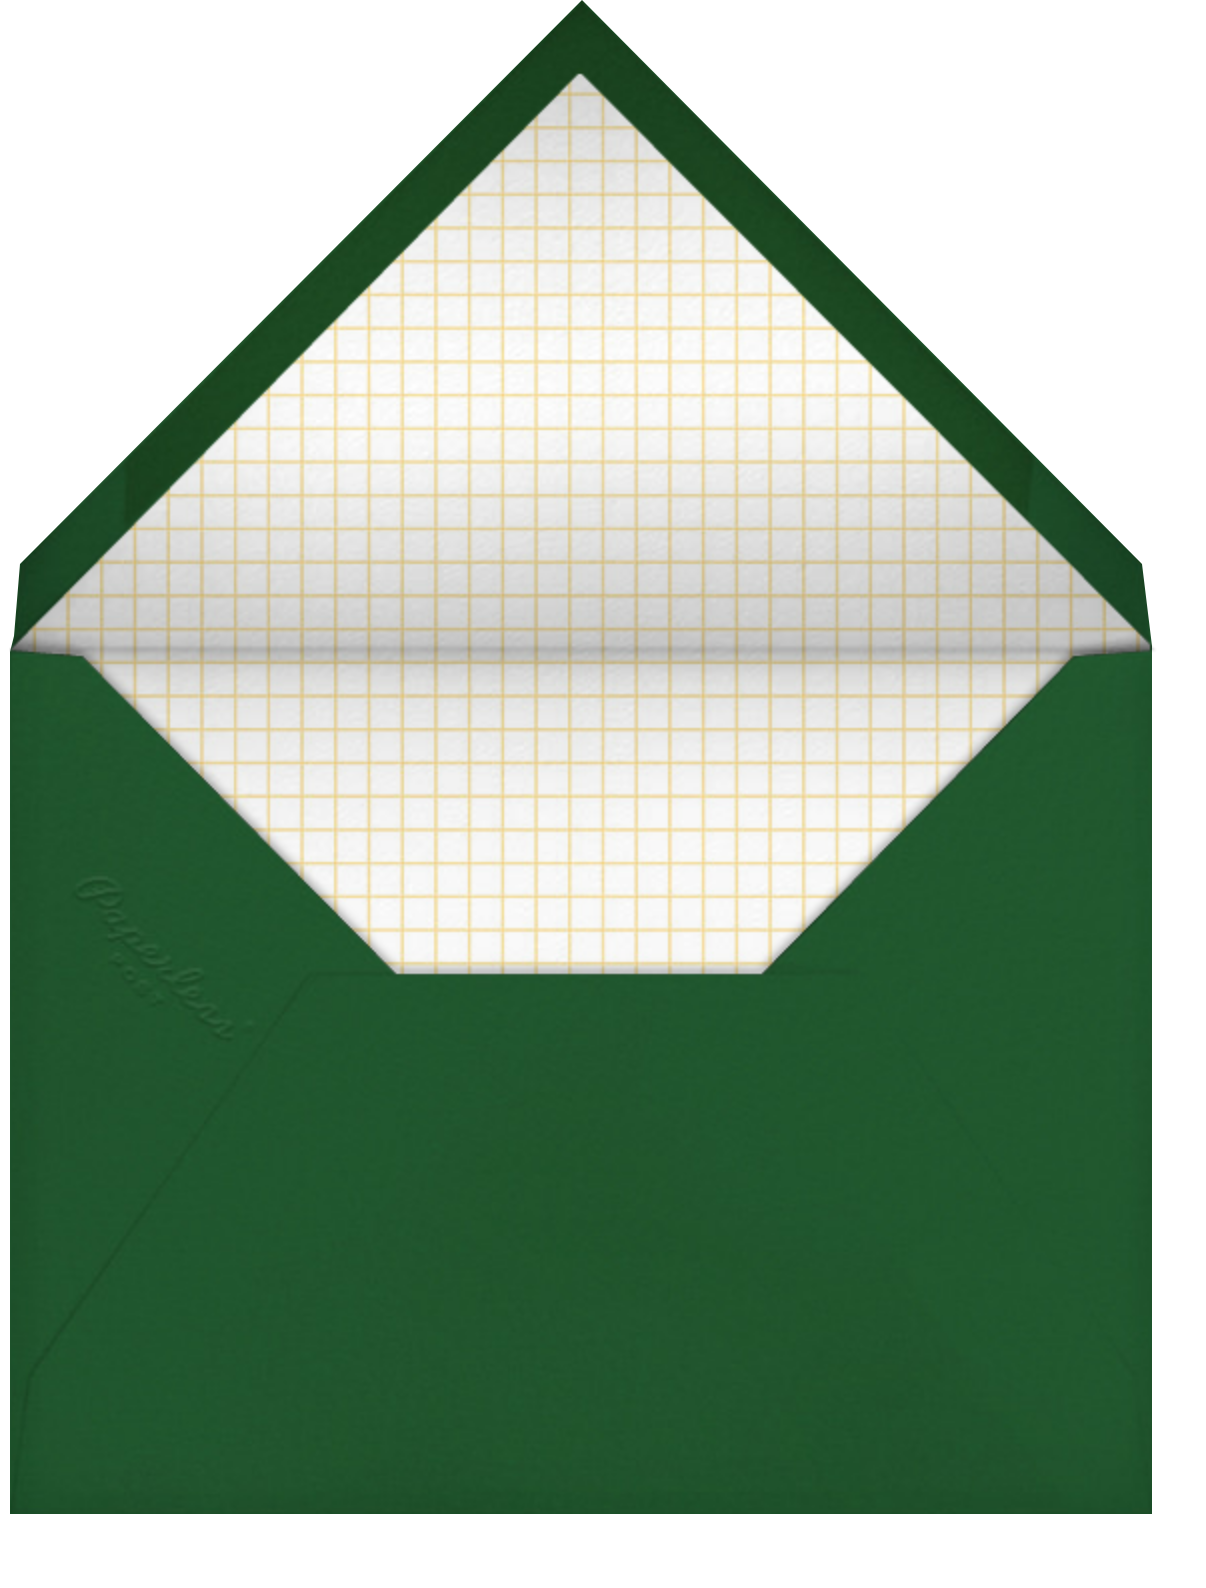 Greenwich (Tall) - Paperless Post - Envelope